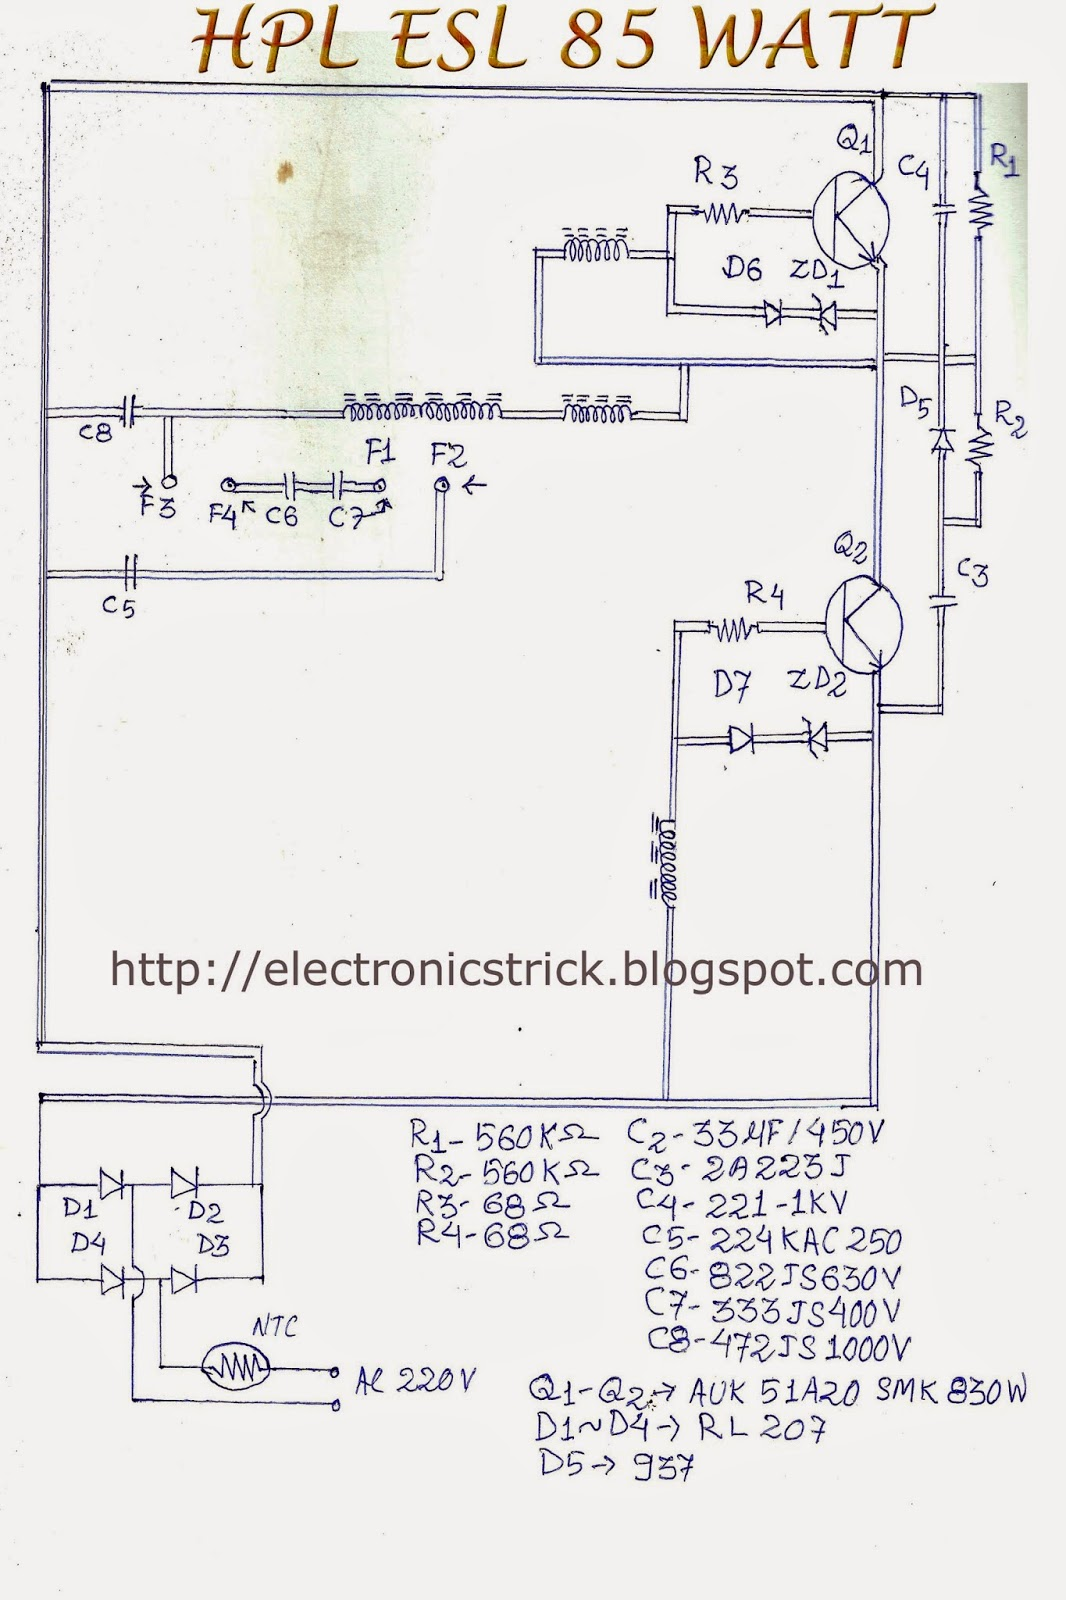 electronics tricks and tips hcl esl 85 watt cfl bulb ckt diagram rh electronicstrick blogspot com cfl circuit diagram+working cfl circuit diagram and working